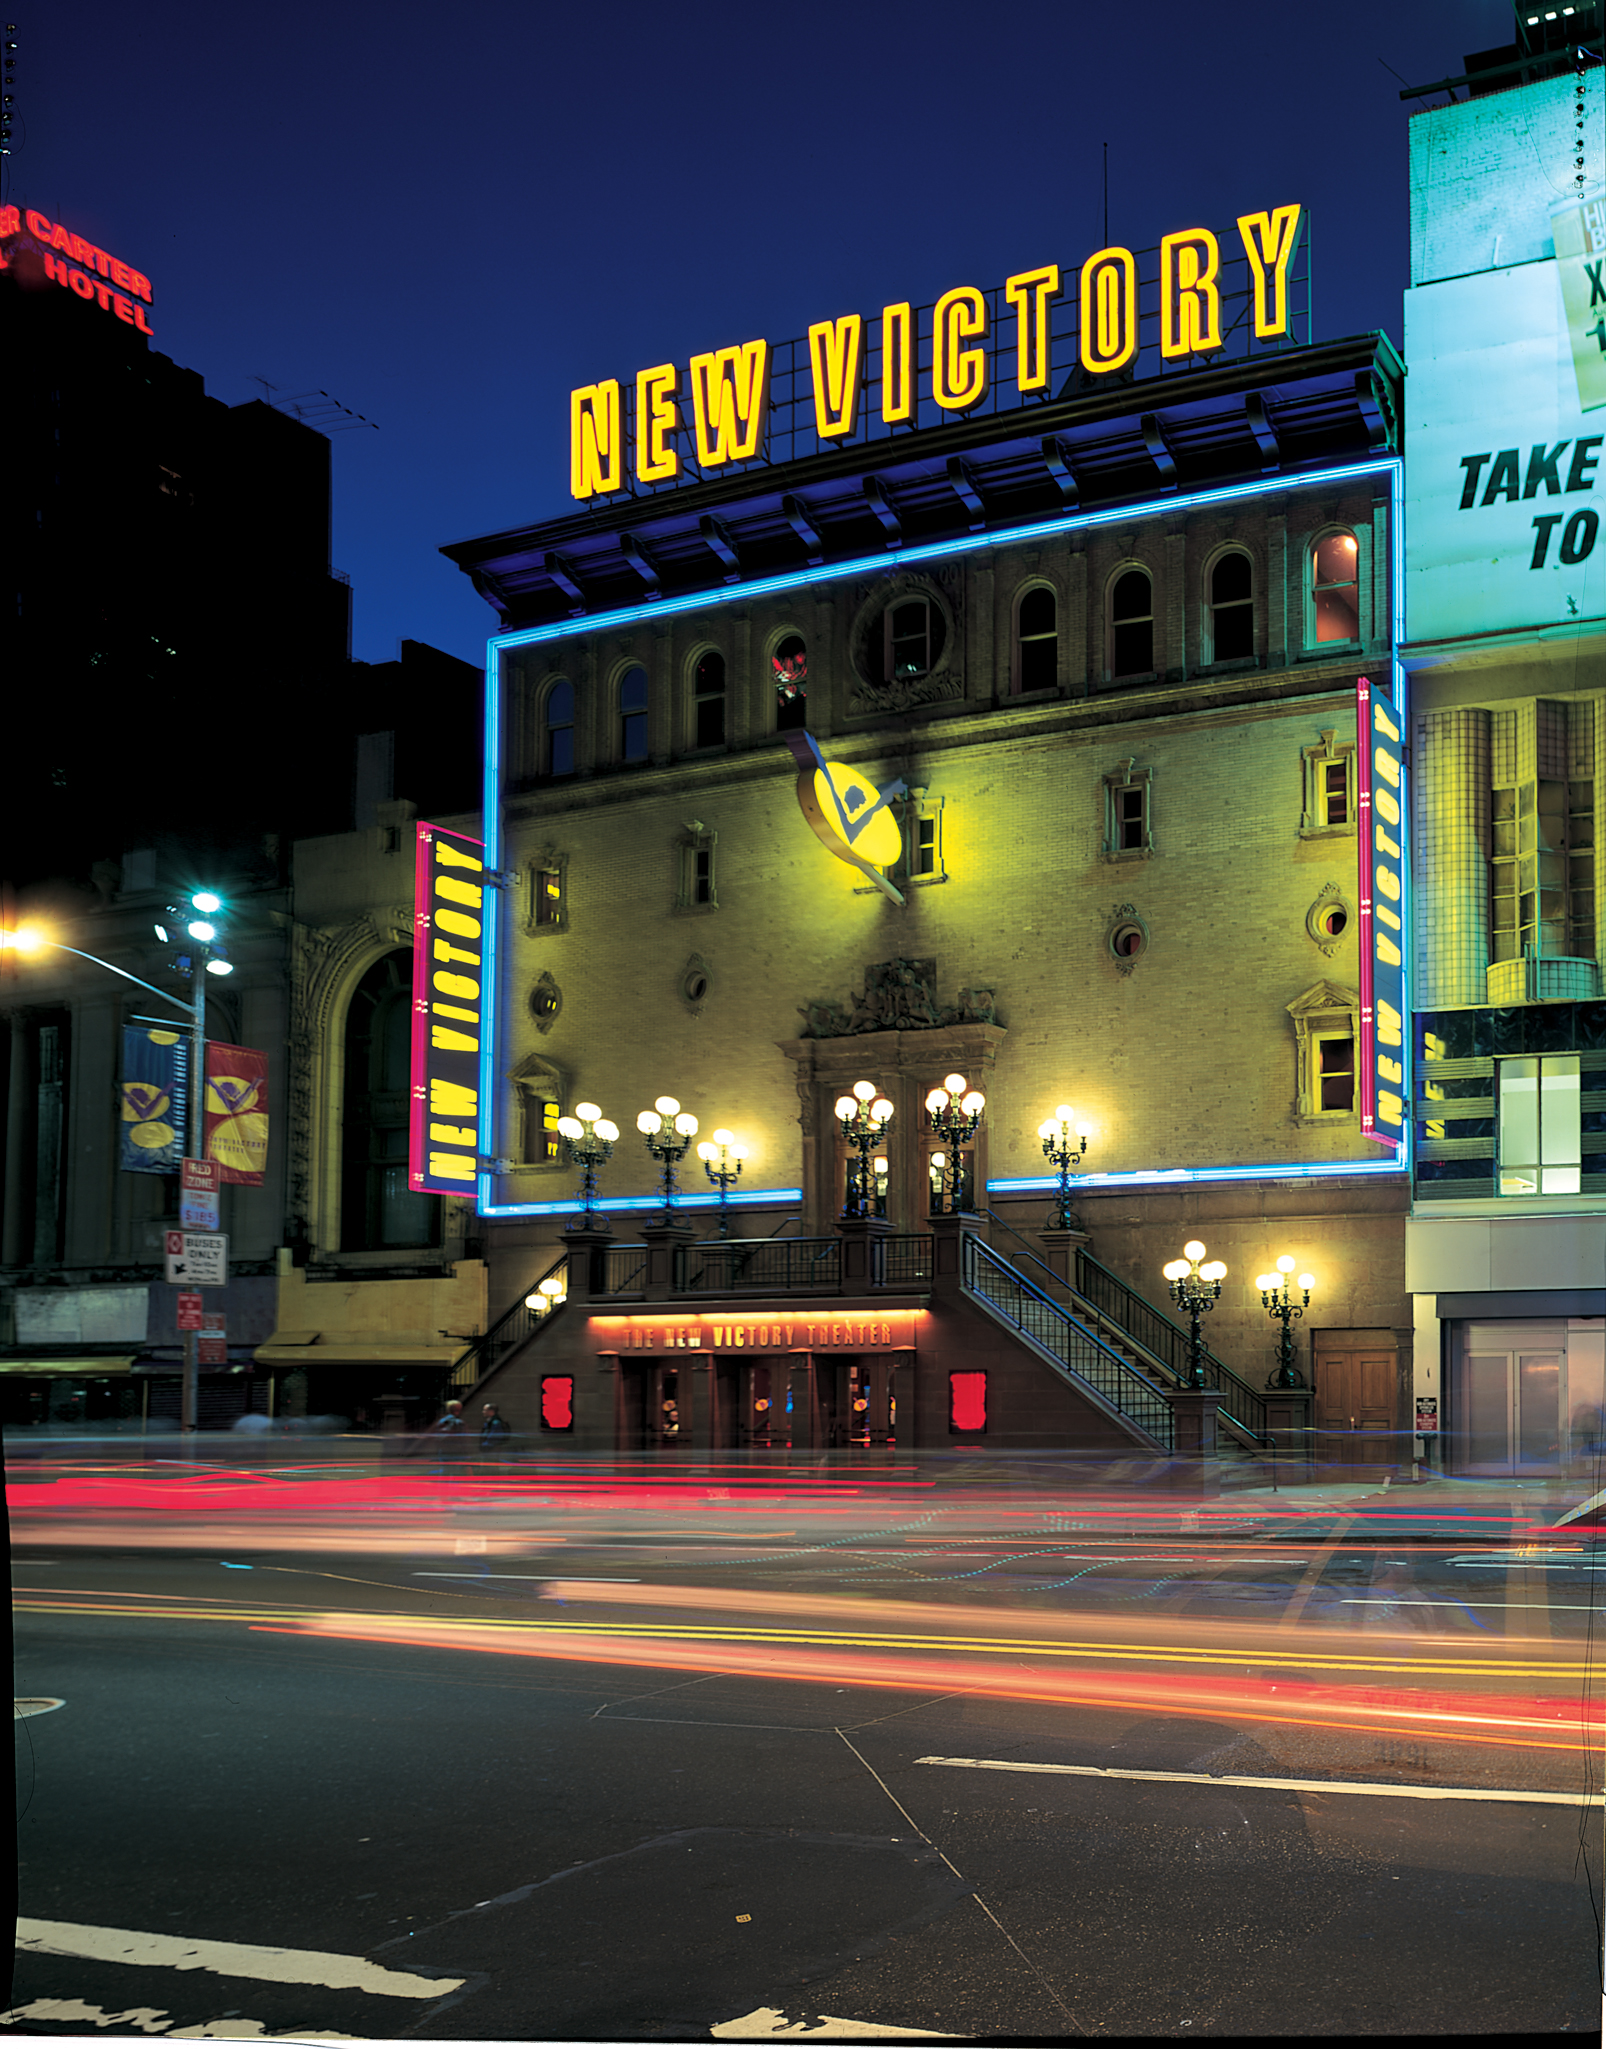 Project image 1 for New Victory Theater Signage, New 42nd Street Corporation